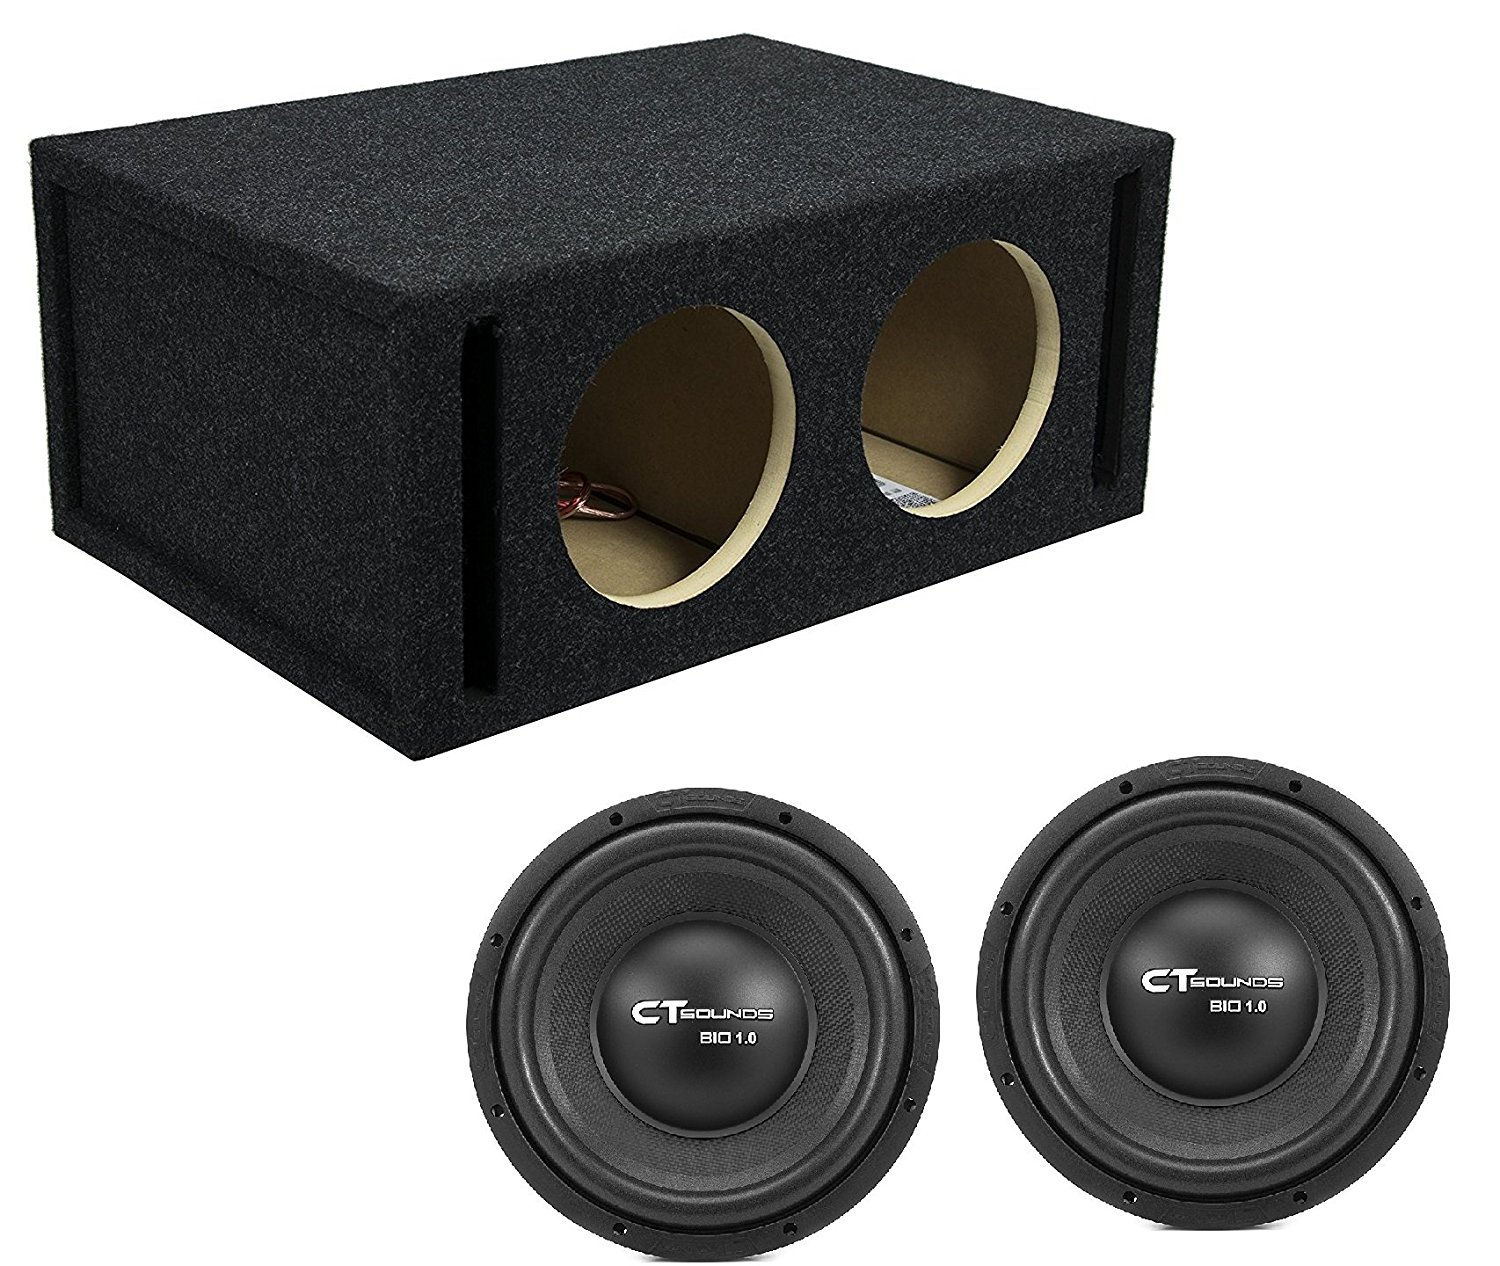 Dual 10 Inch Car Subwoofer Bass Package with Dual Ported Box by CT Sounds